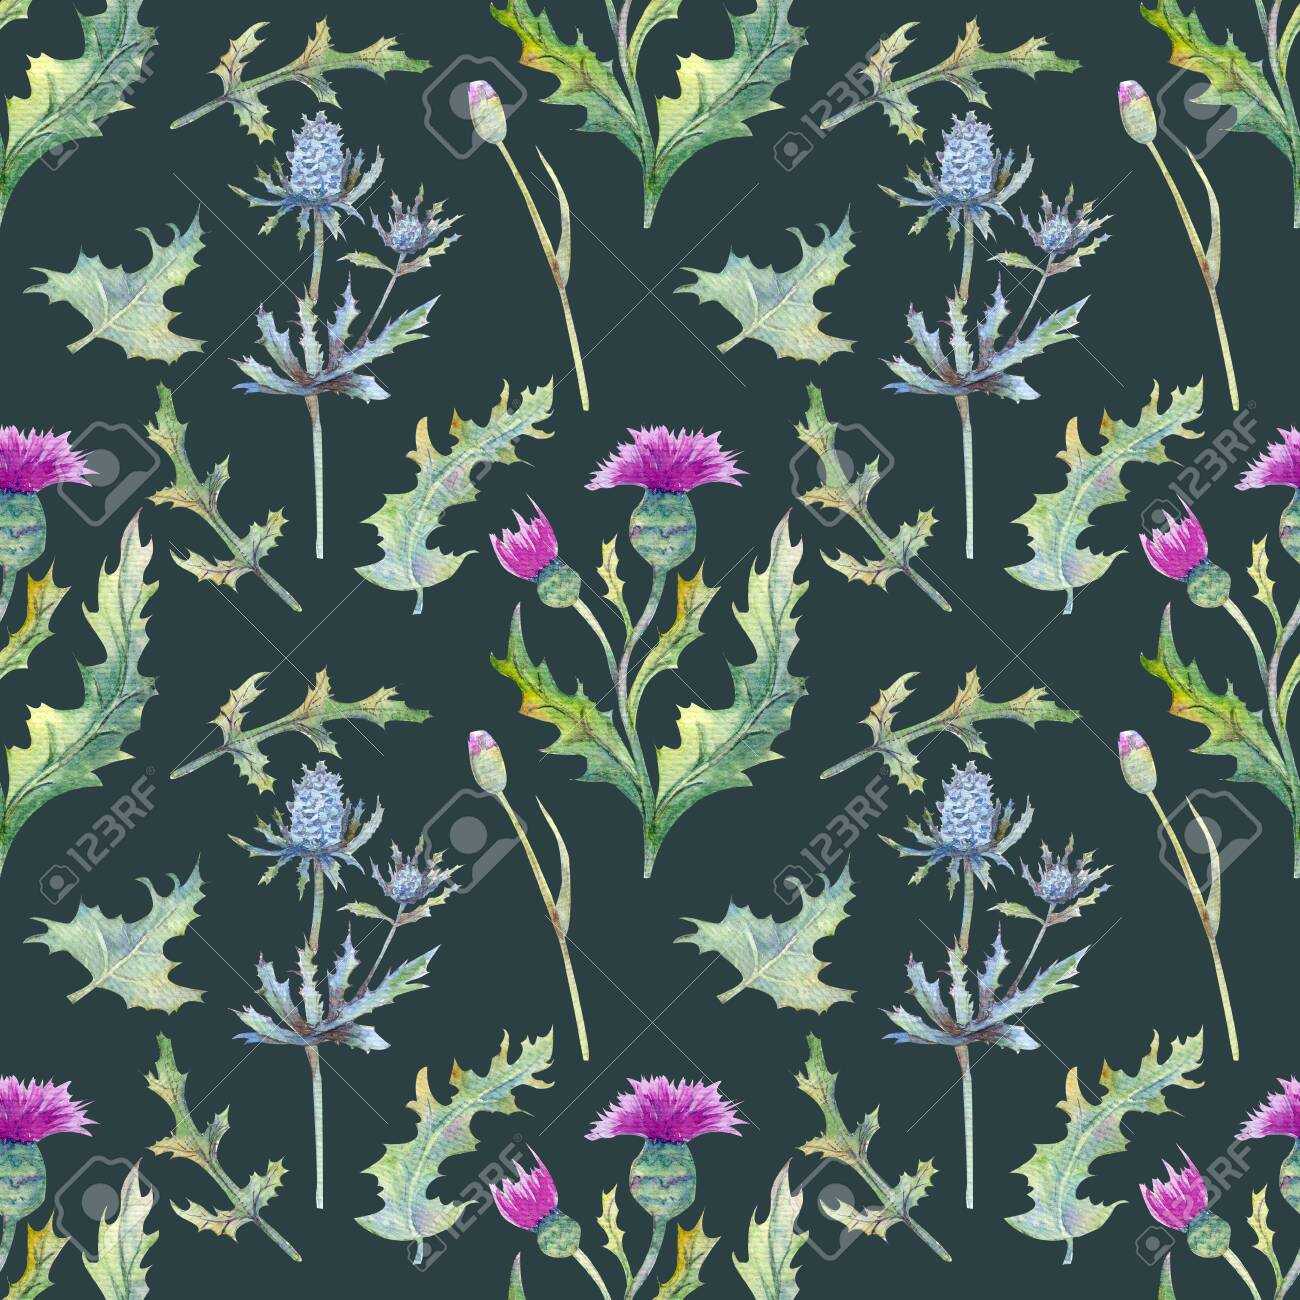 Seamless Background With Spring Flowers And Leaves Wildflowers